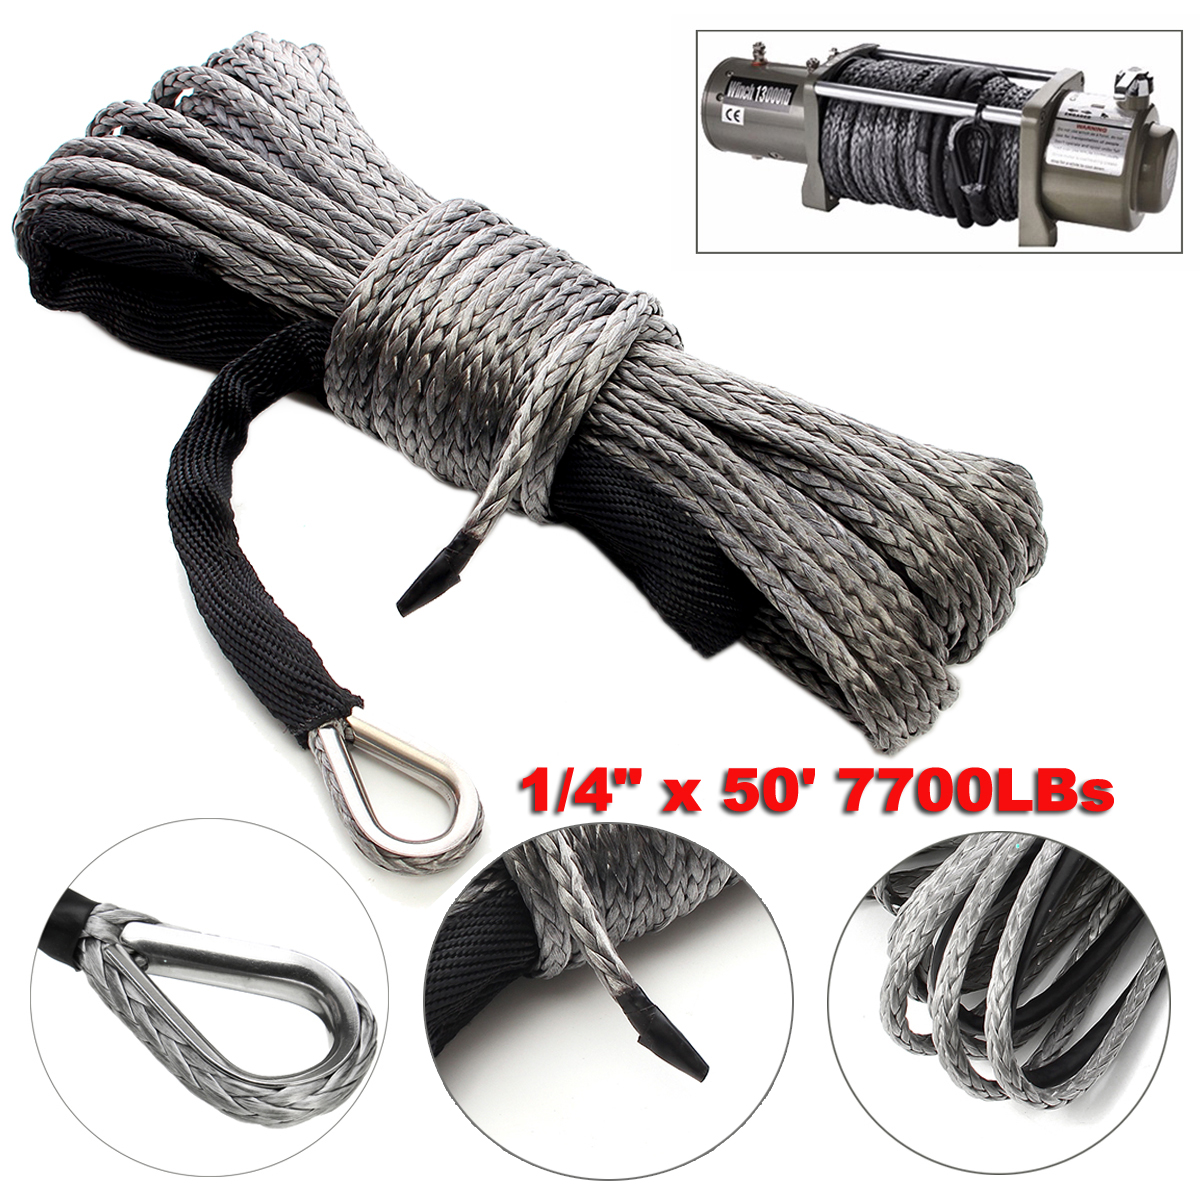 5mm X 15m Winch Line Rope Cable 7700 LBs For ATV UTV Vehicle Synthetic Gray m